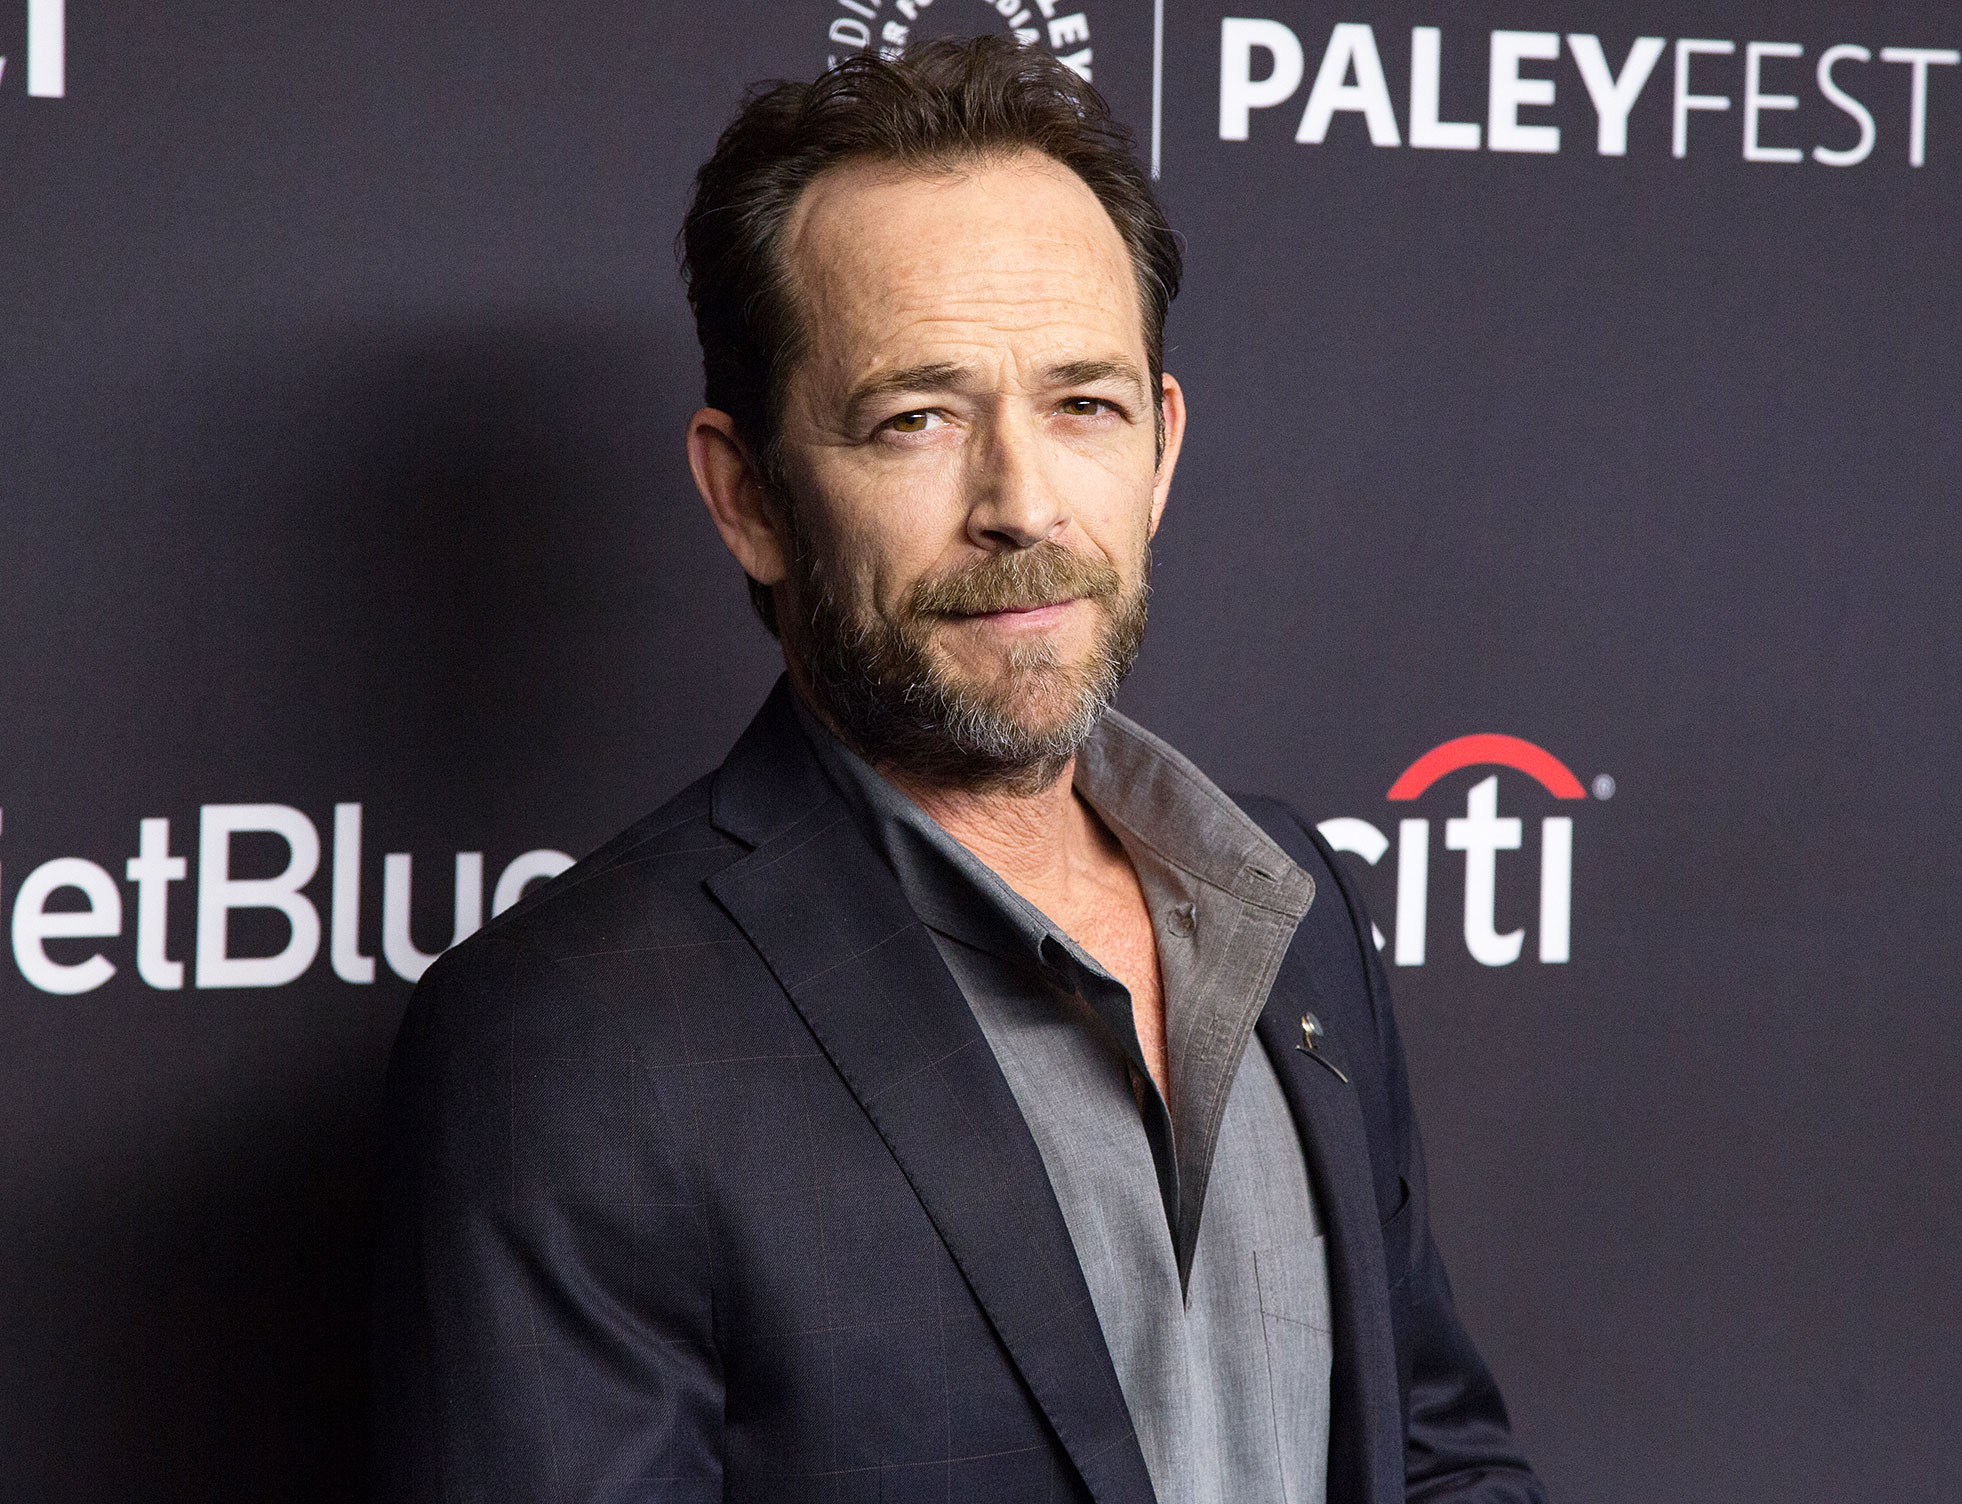 Luke Perry Dead Wrestler Son Jack Drops Out Of Show - Luke Perry arrives at the 2018 PaleyFest Los Angeles – CW's 'Riverdale' at Dolby Theatre in Hollywood on March 25, 2018.